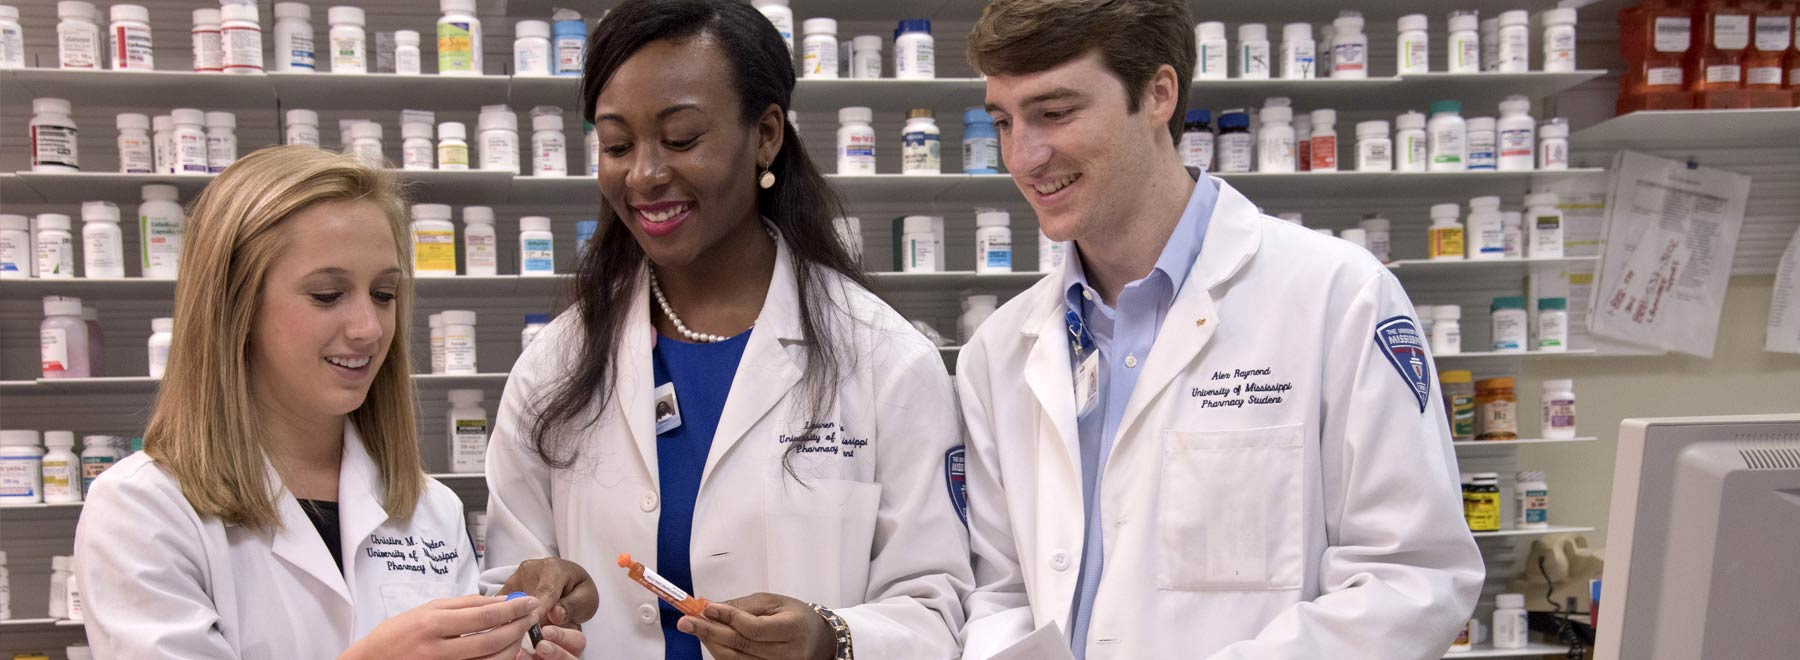 Three School of Pharmacy students in a pharmacy setting